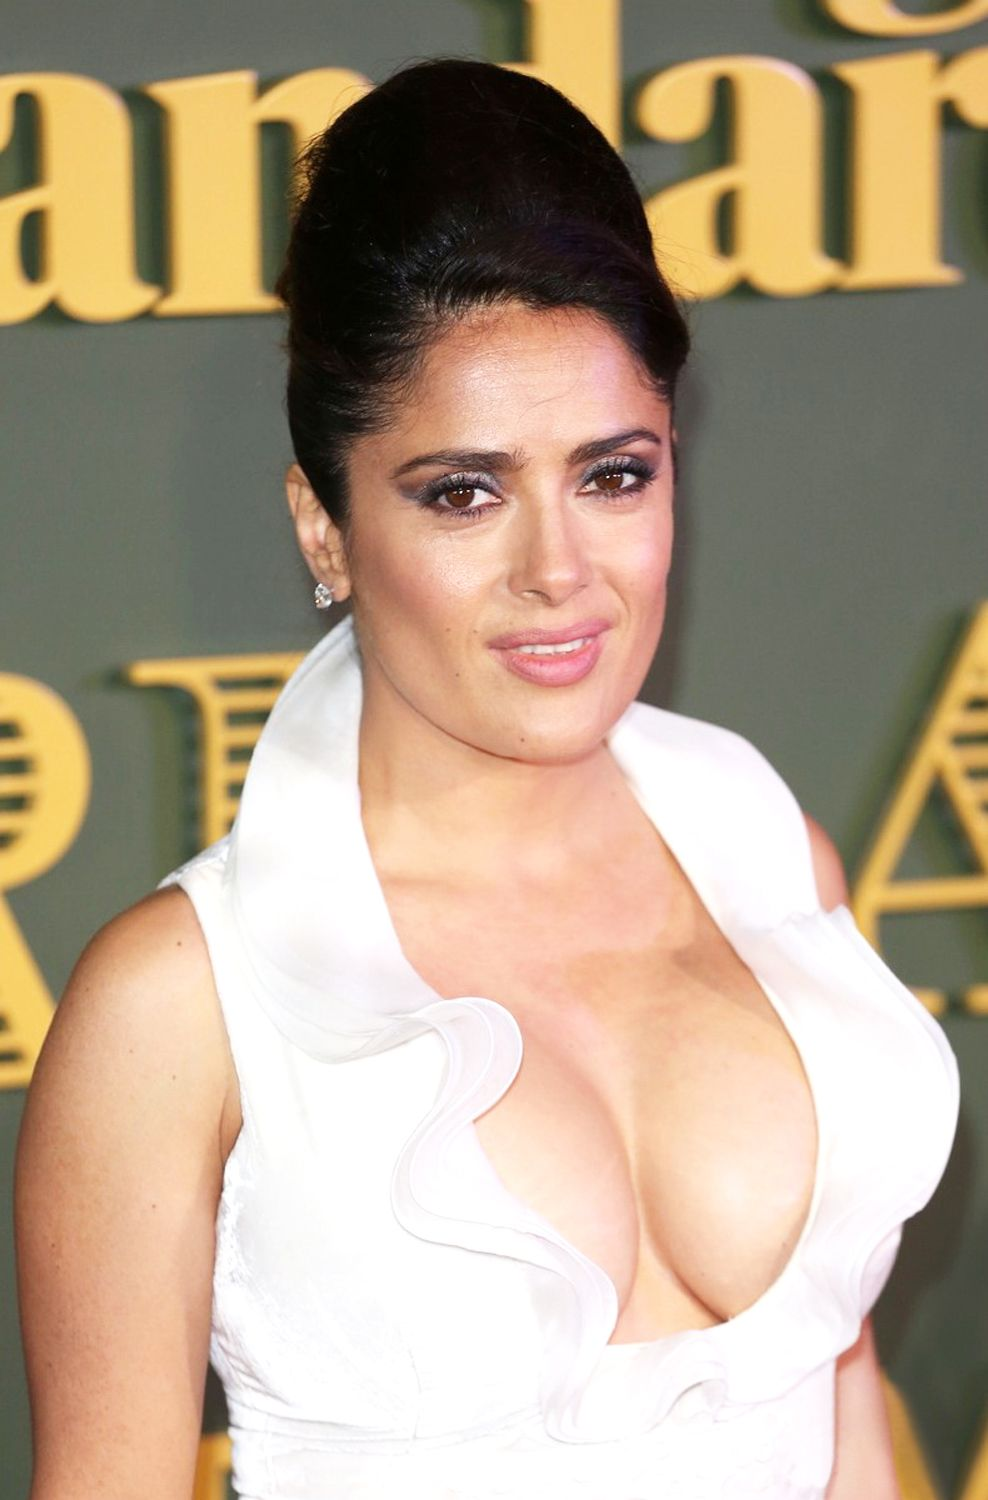 Salma Hayek Boobs Photos